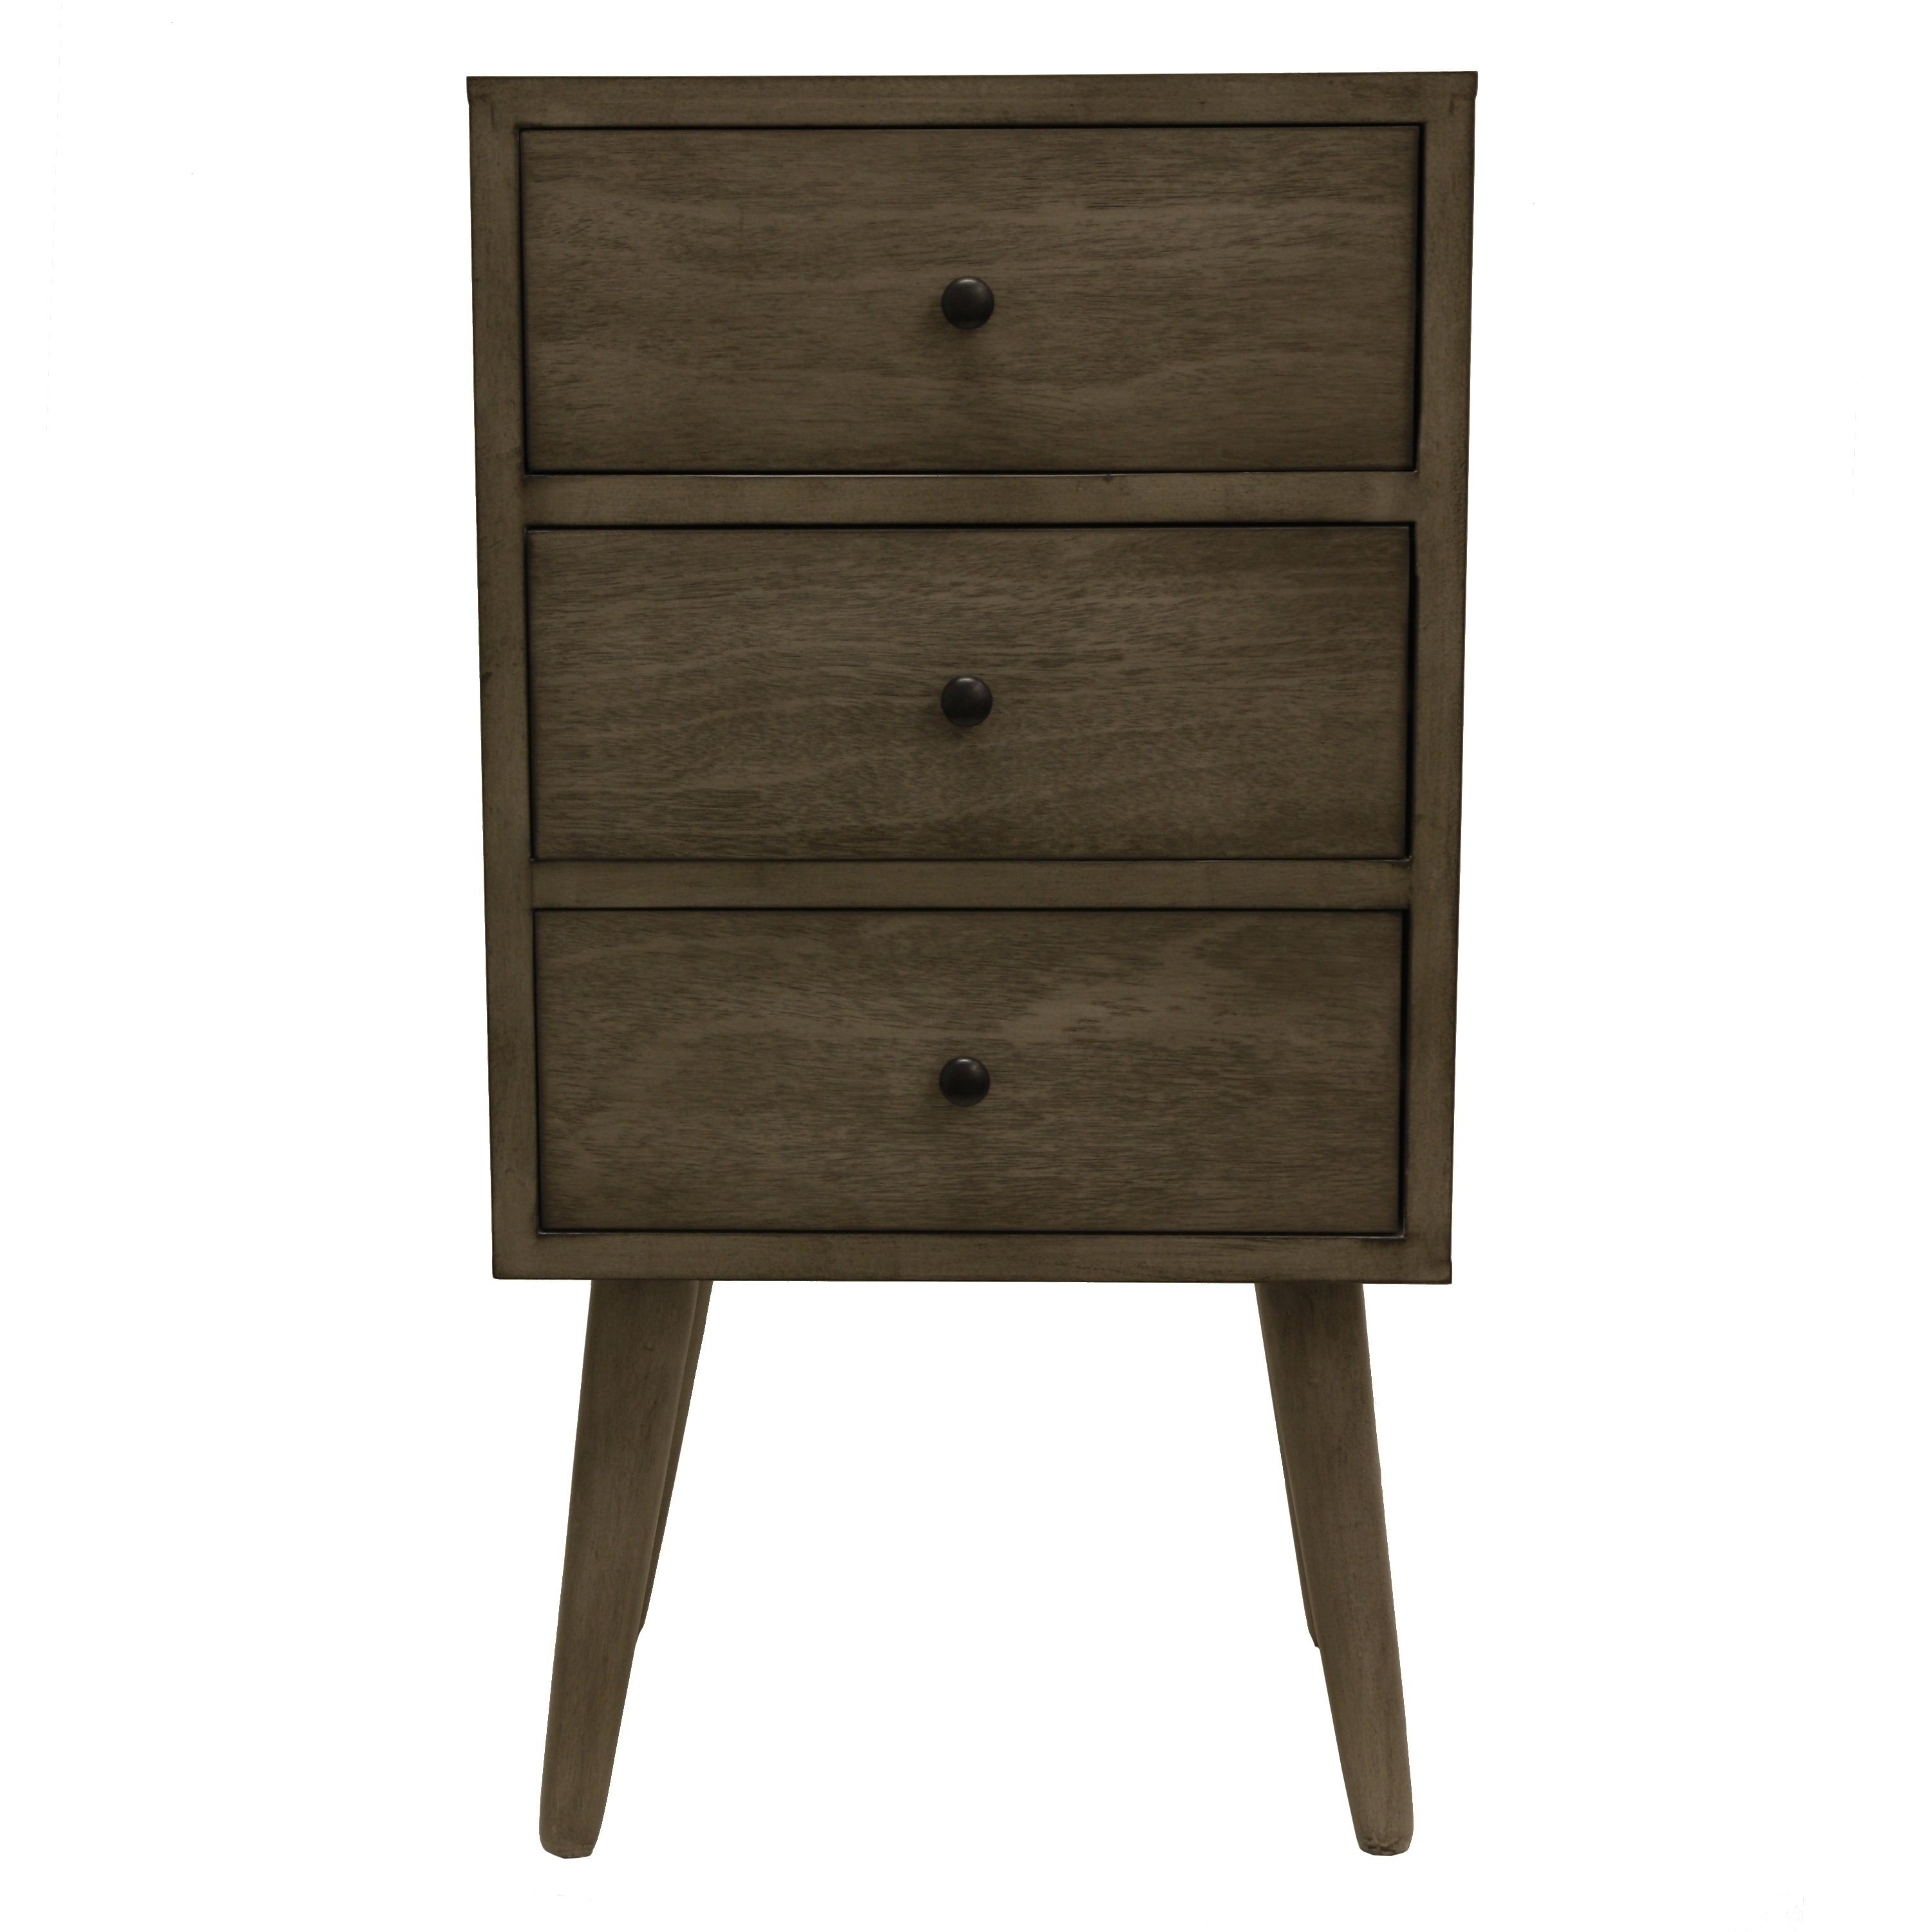 Grey, End Tables Living Room Furniture | Find Great Furniture Deals regarding Mandara 3-Drawer 2-Door Sideboards (Image 11 of 30)